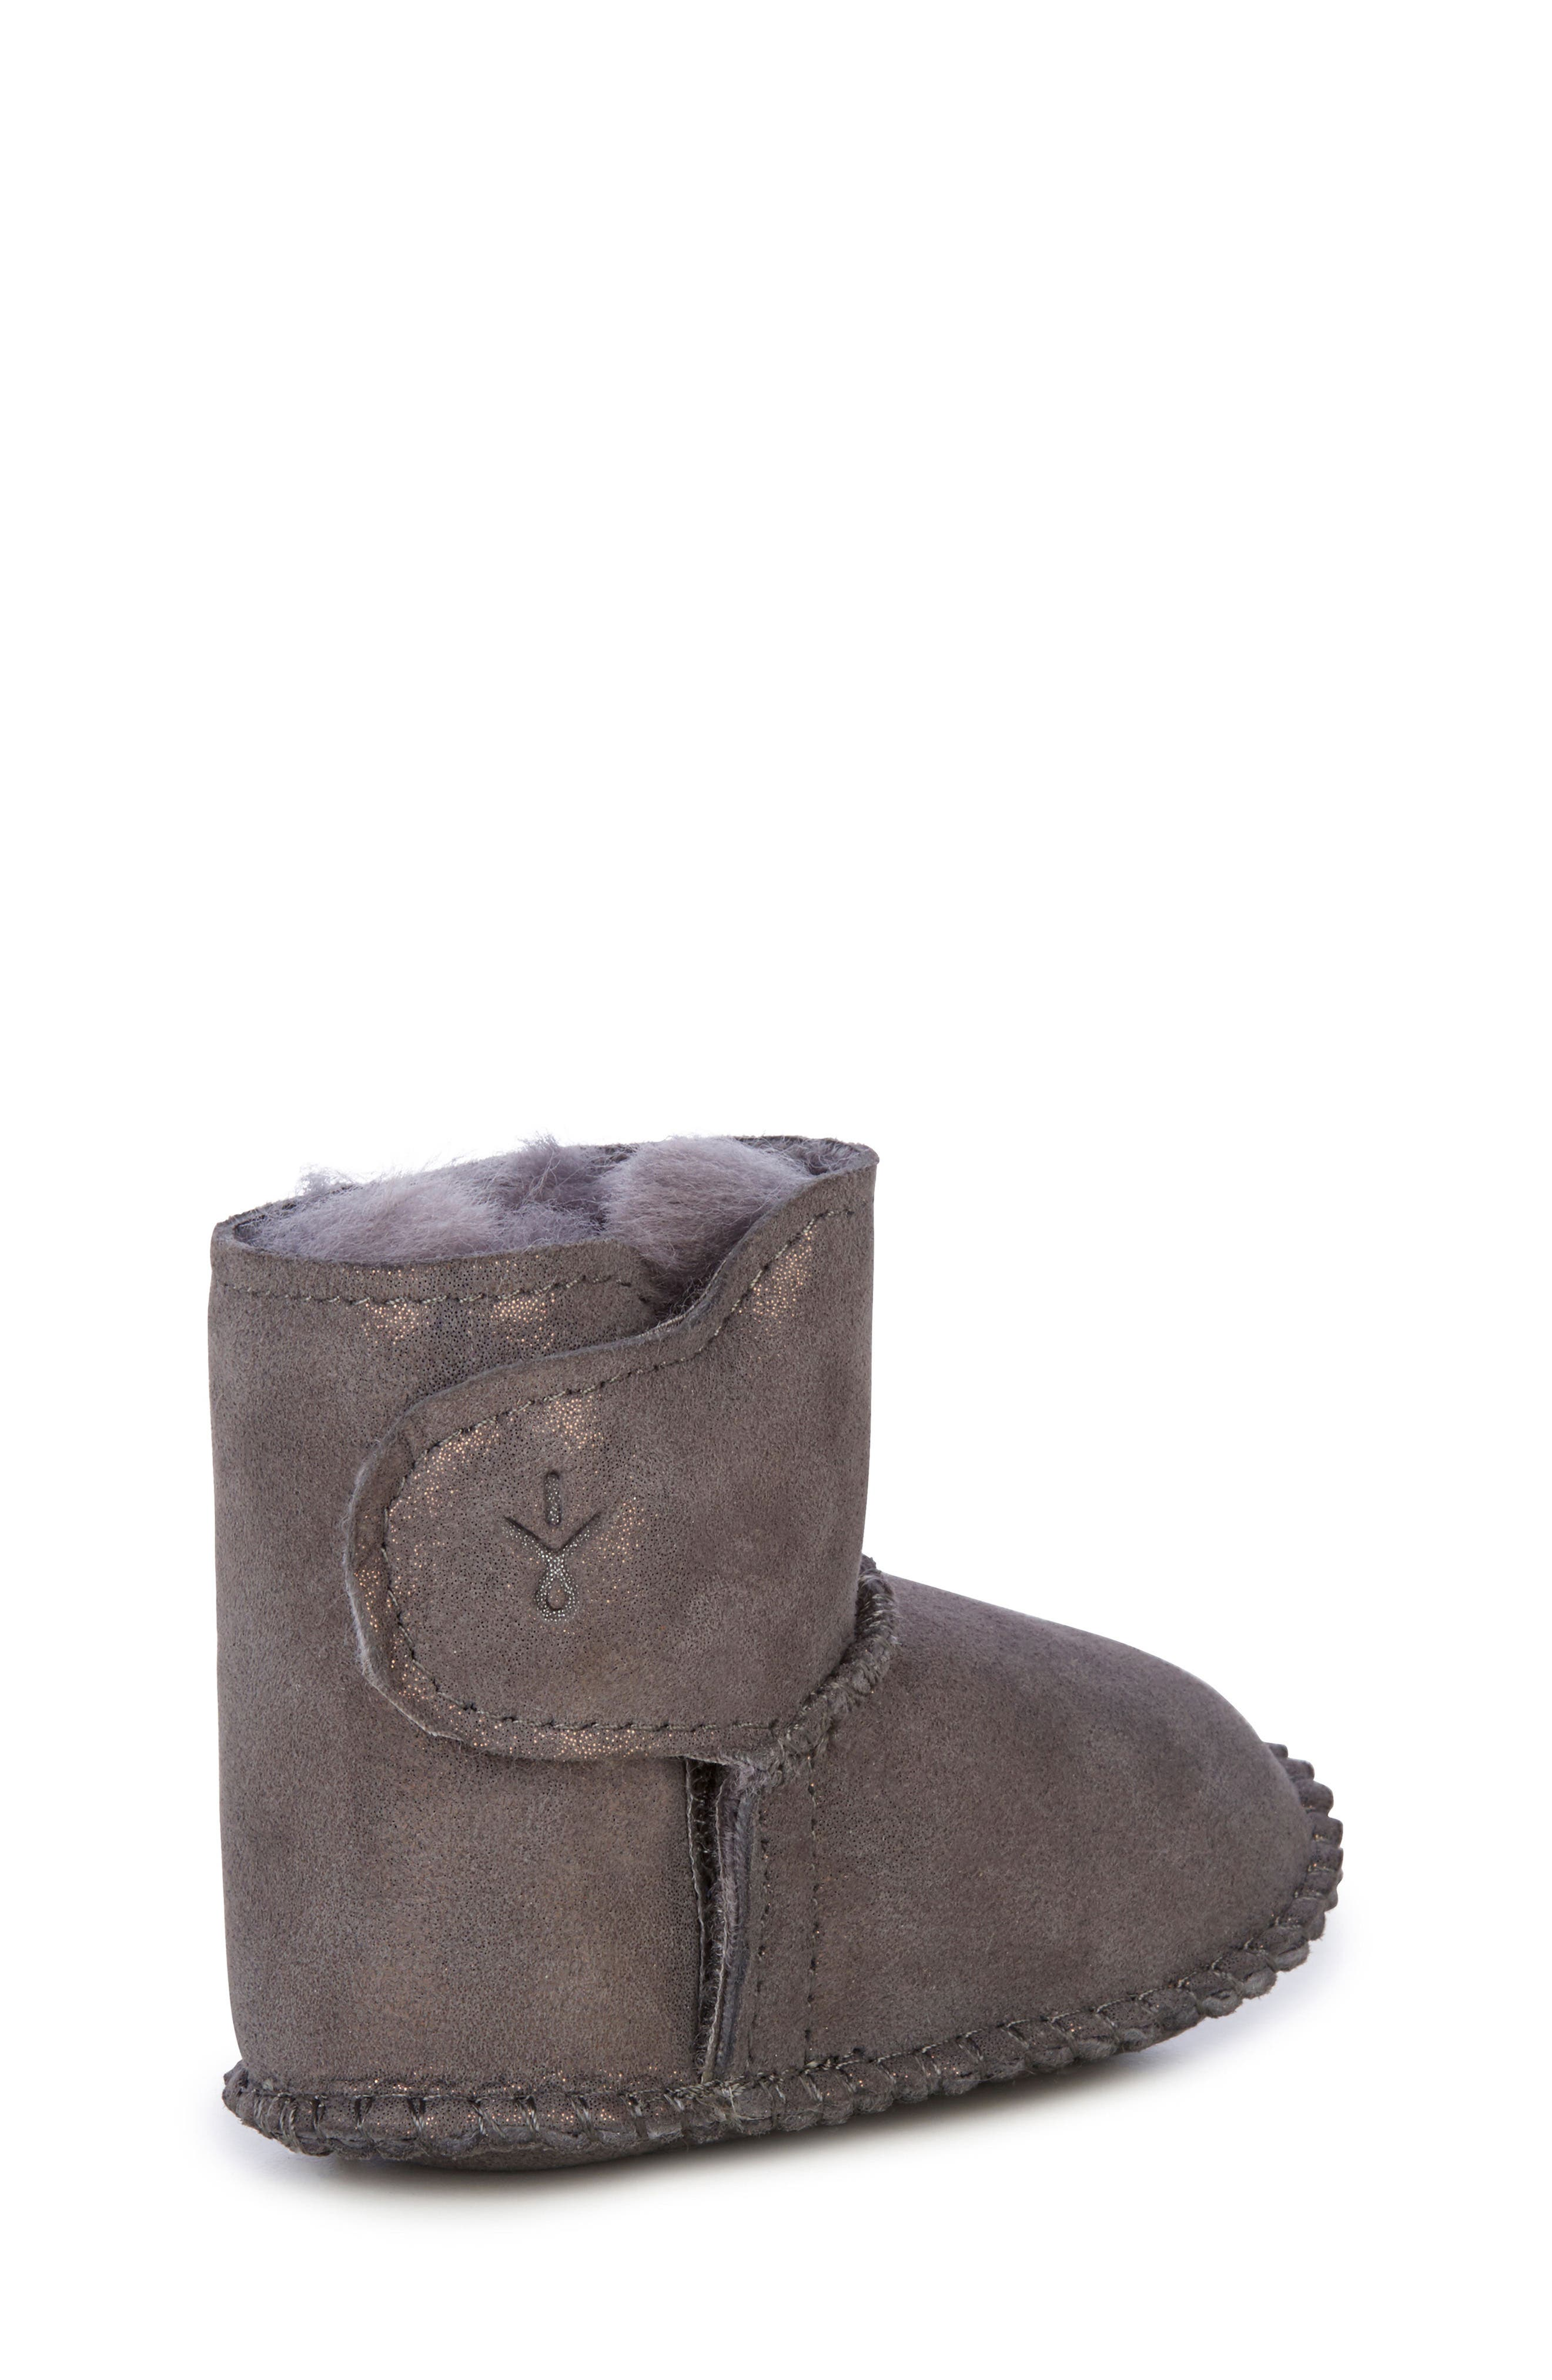 Water Resistant Metallic Bootie,                             Alternate thumbnail 10, color,                             CHARCOAL